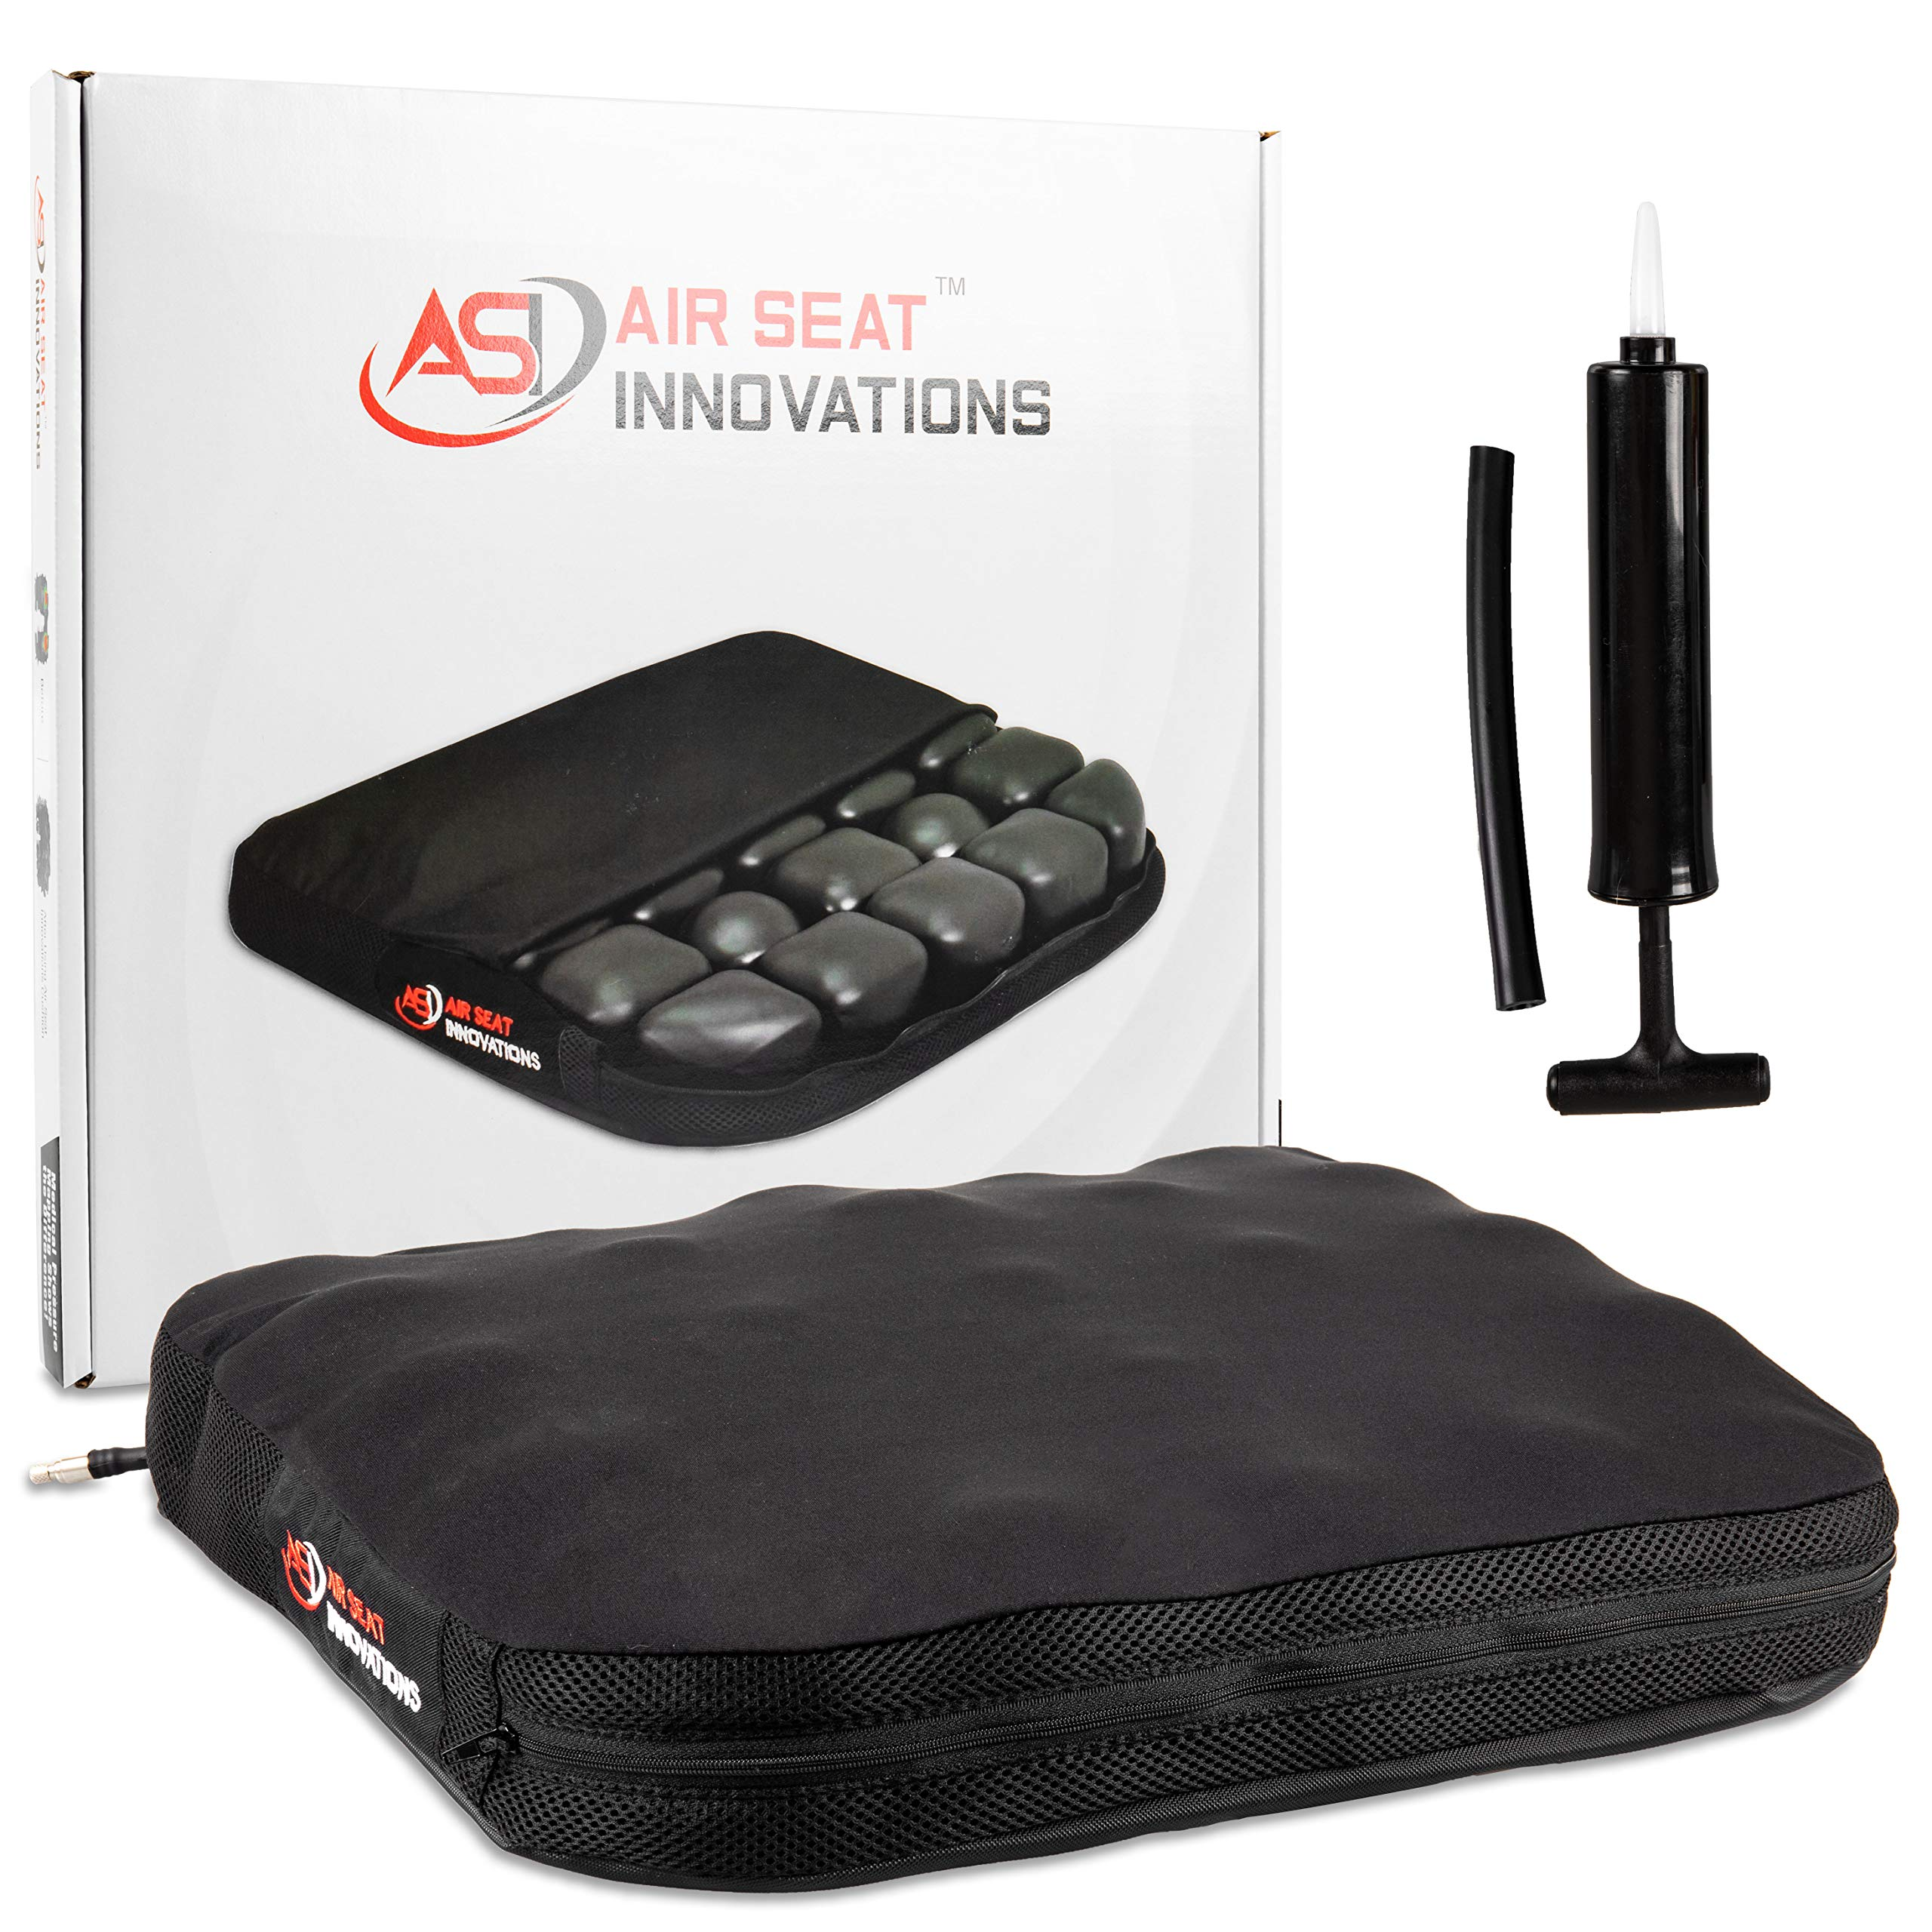 Air Seat Innovations Seat Cushion: Office Chair, Wheelchair, Car or Truck Driver Seat Pad - Lower Back, Coccyx and Sciatica Pain Relief, 18'' x 16'' by Air Seat Innovations